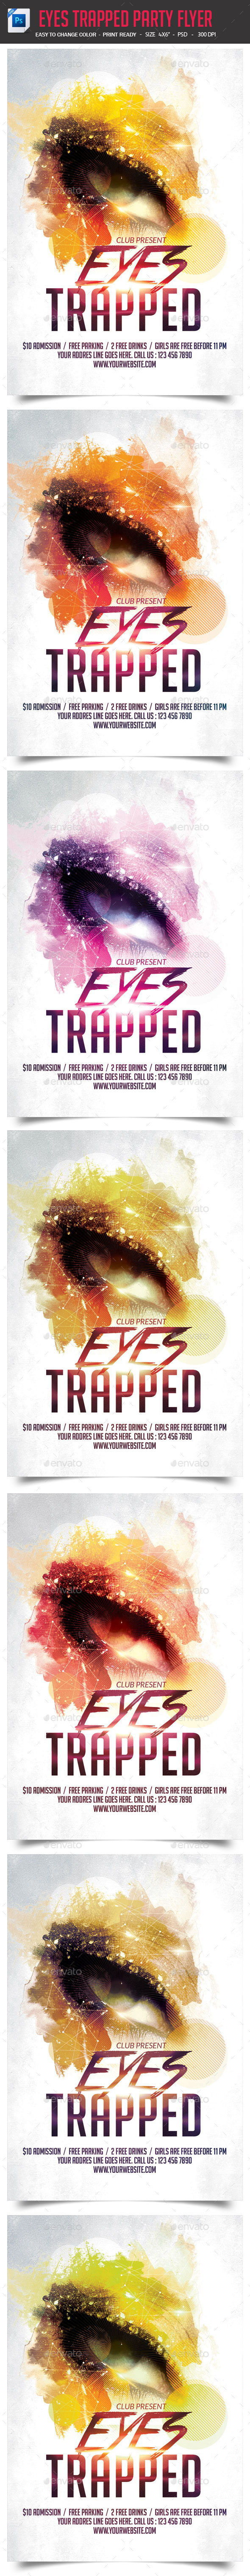 GraphicRiver Eyes Trapped Party Night Flyer 9359983